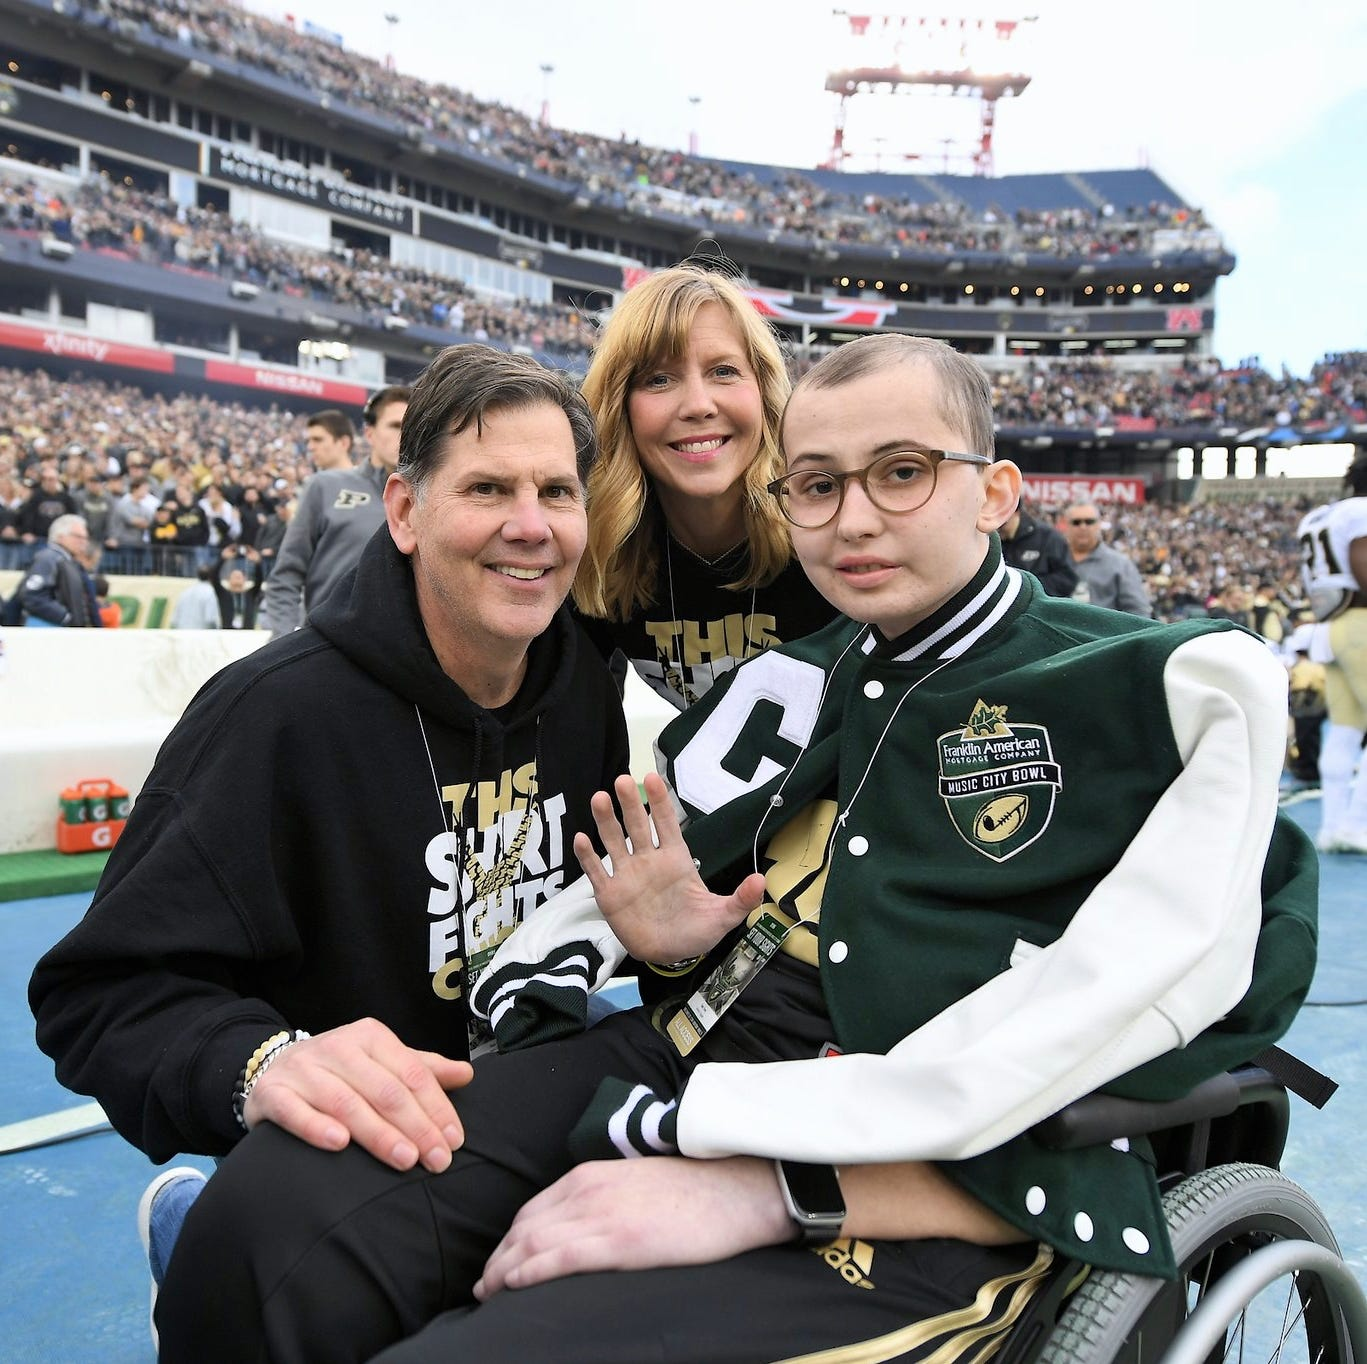 Tyler Trent: Music City Bowl honorary captain, Purdue super fan dies